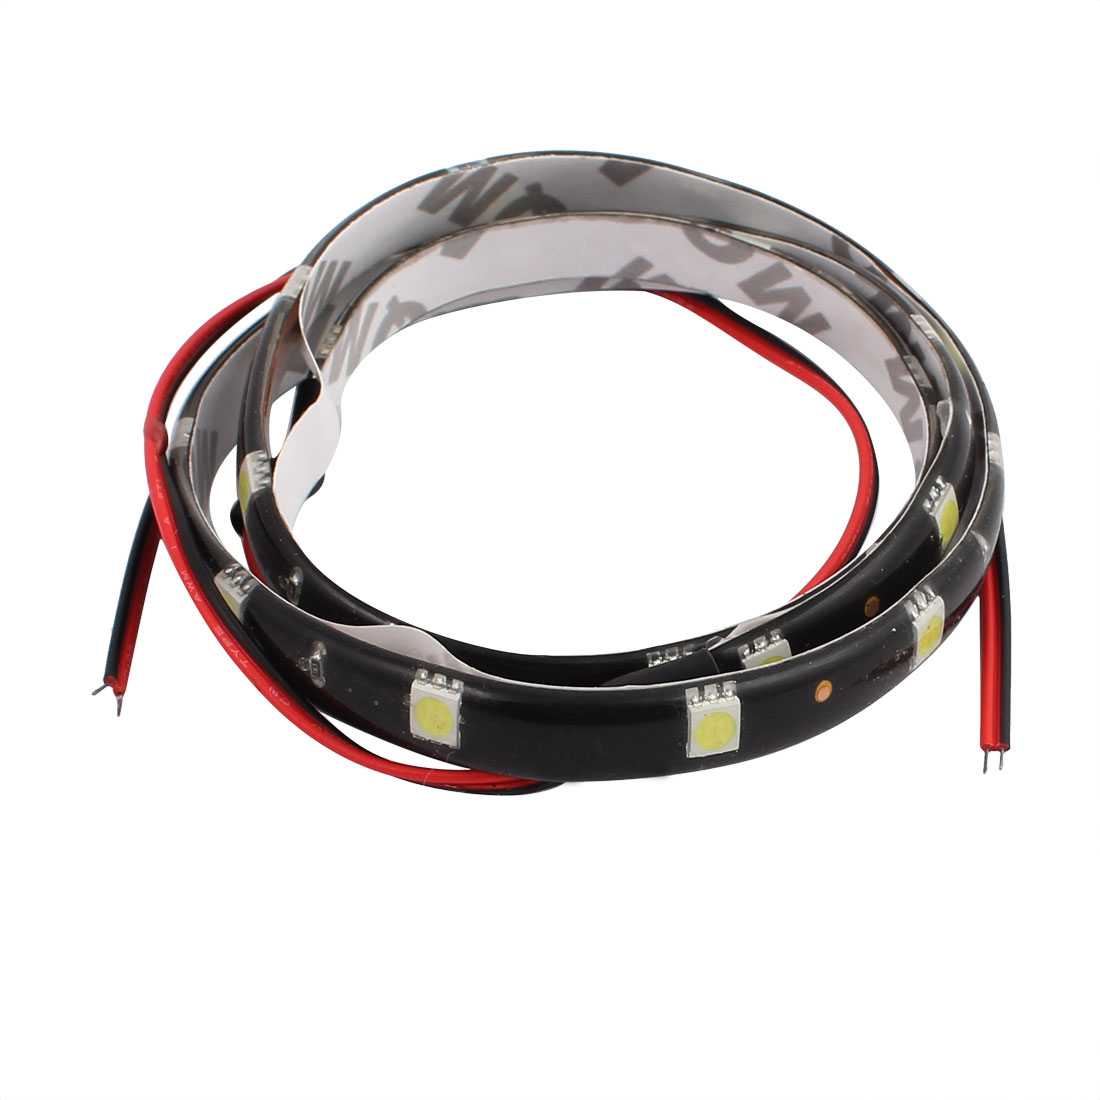 60CM 12V RGB 50mm x 50mm Red LED Strip Light For Motorcycle or Car with 30 lights